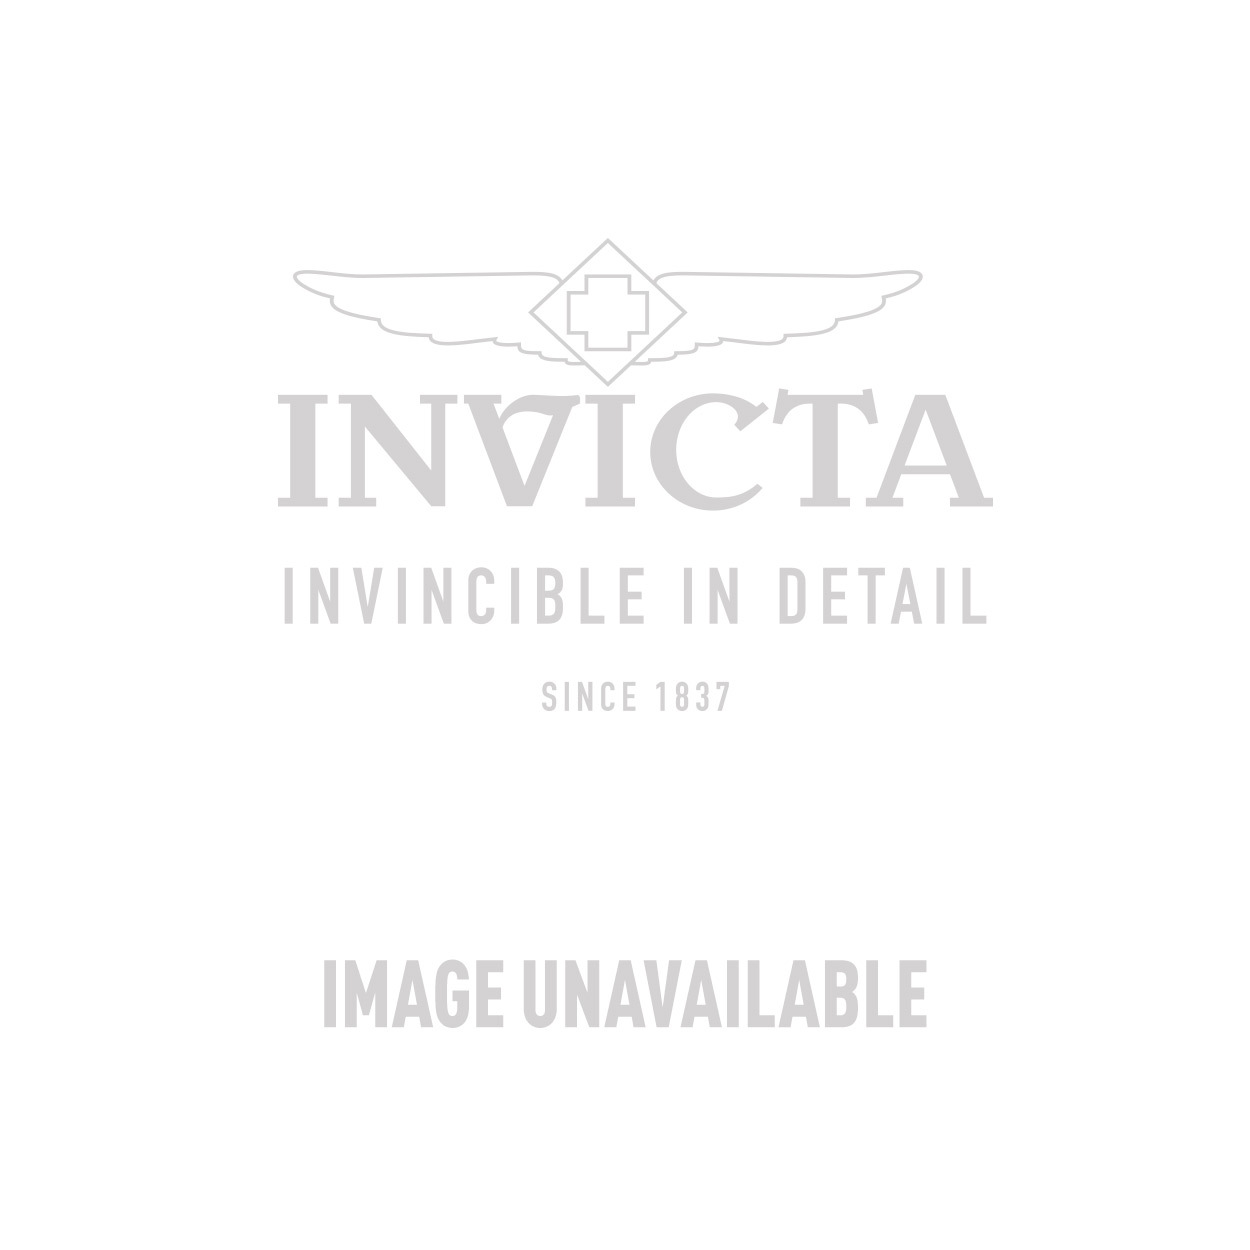 Invicta Specialty Mechanical Watch - Black case with Grey tone Leather band - Model 18061